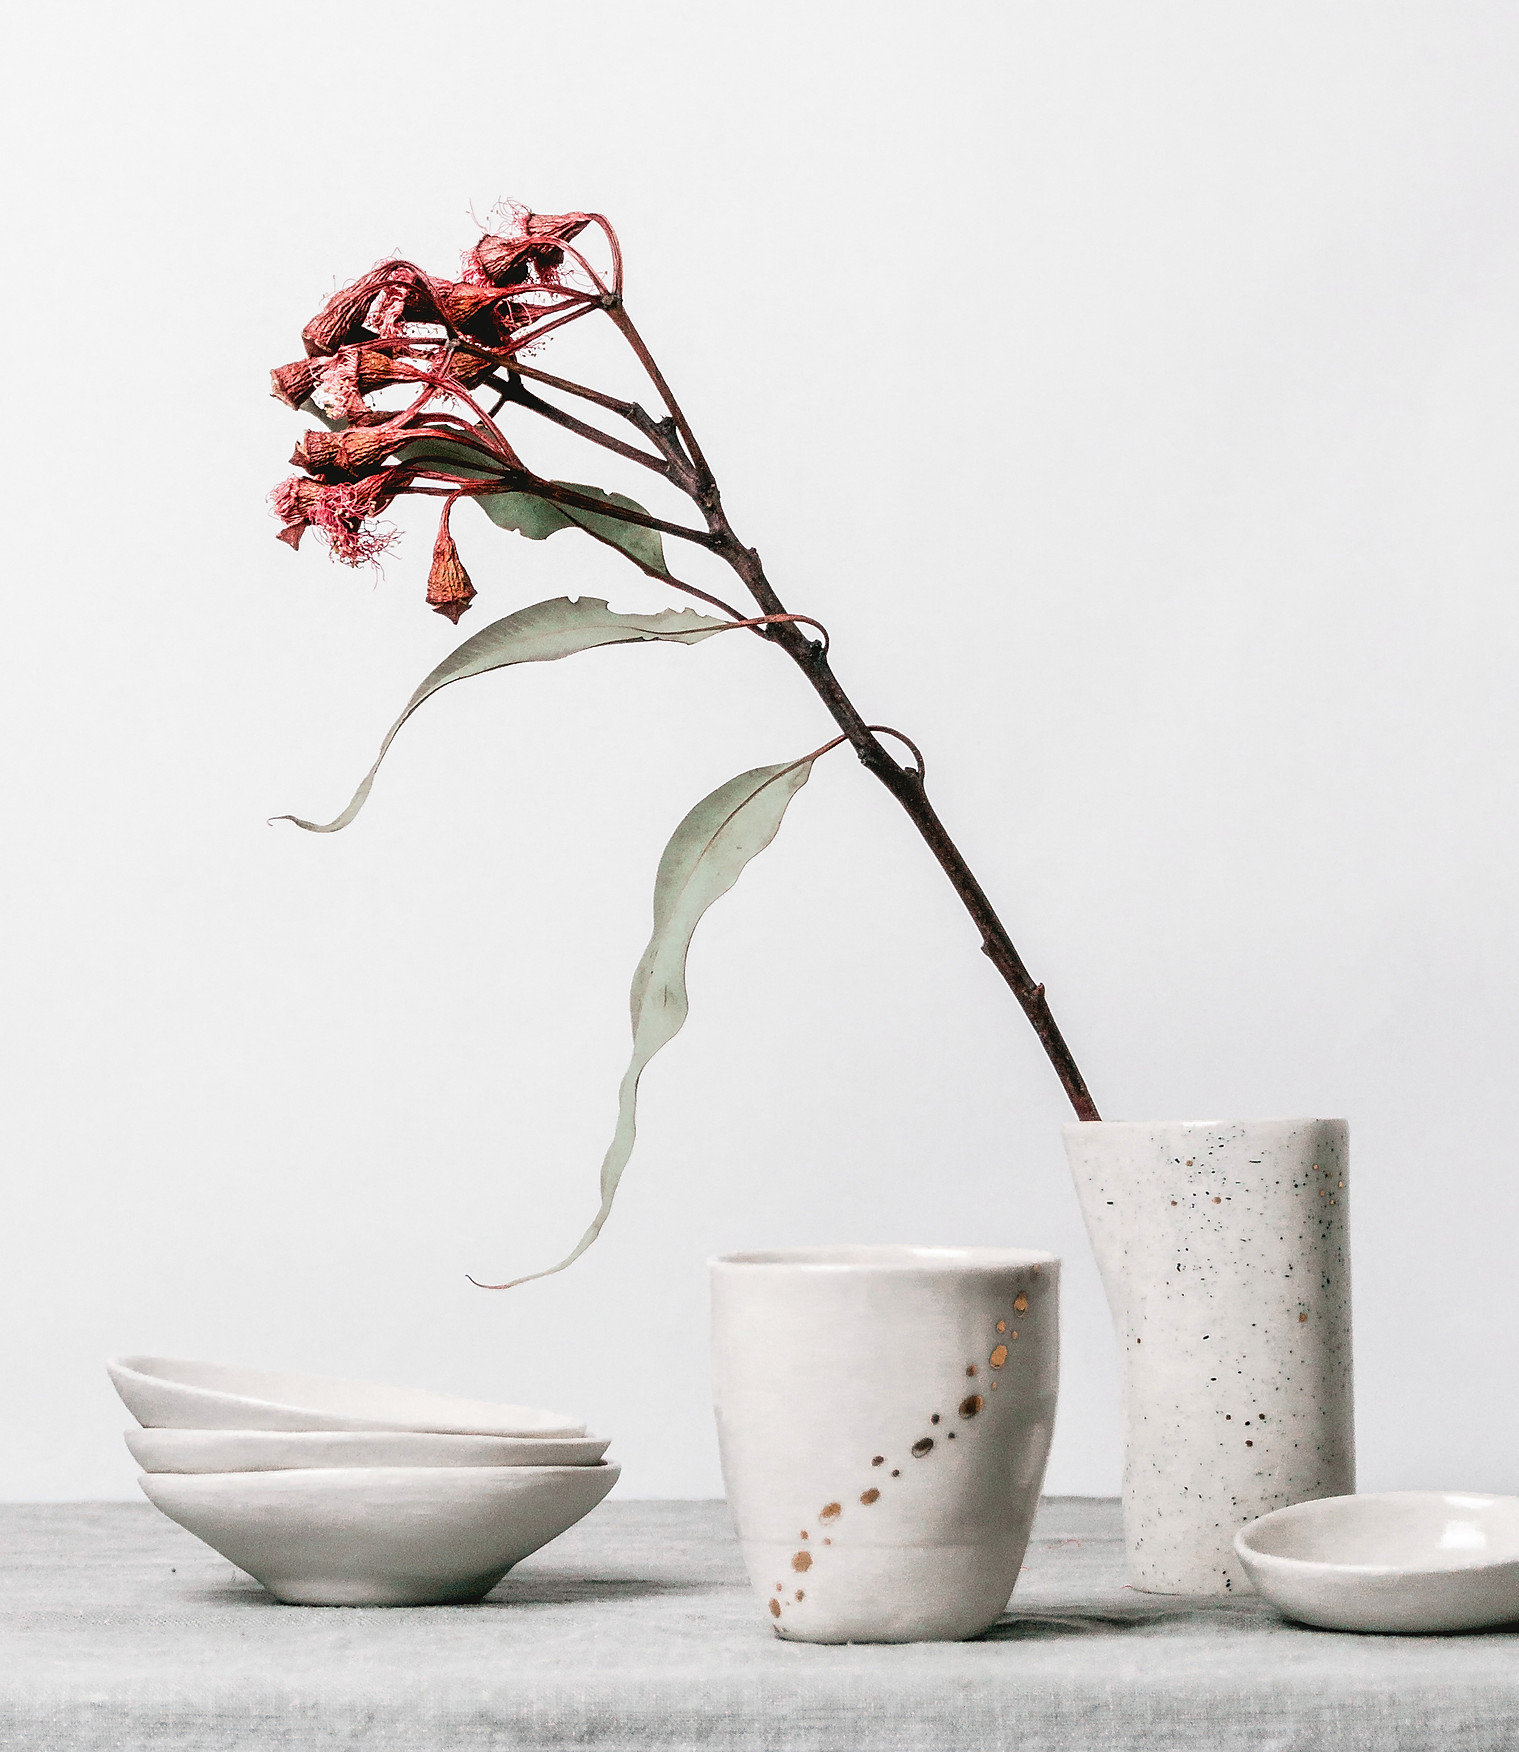 handmade ceramic homewares made on the Northern Beaches of Sydney